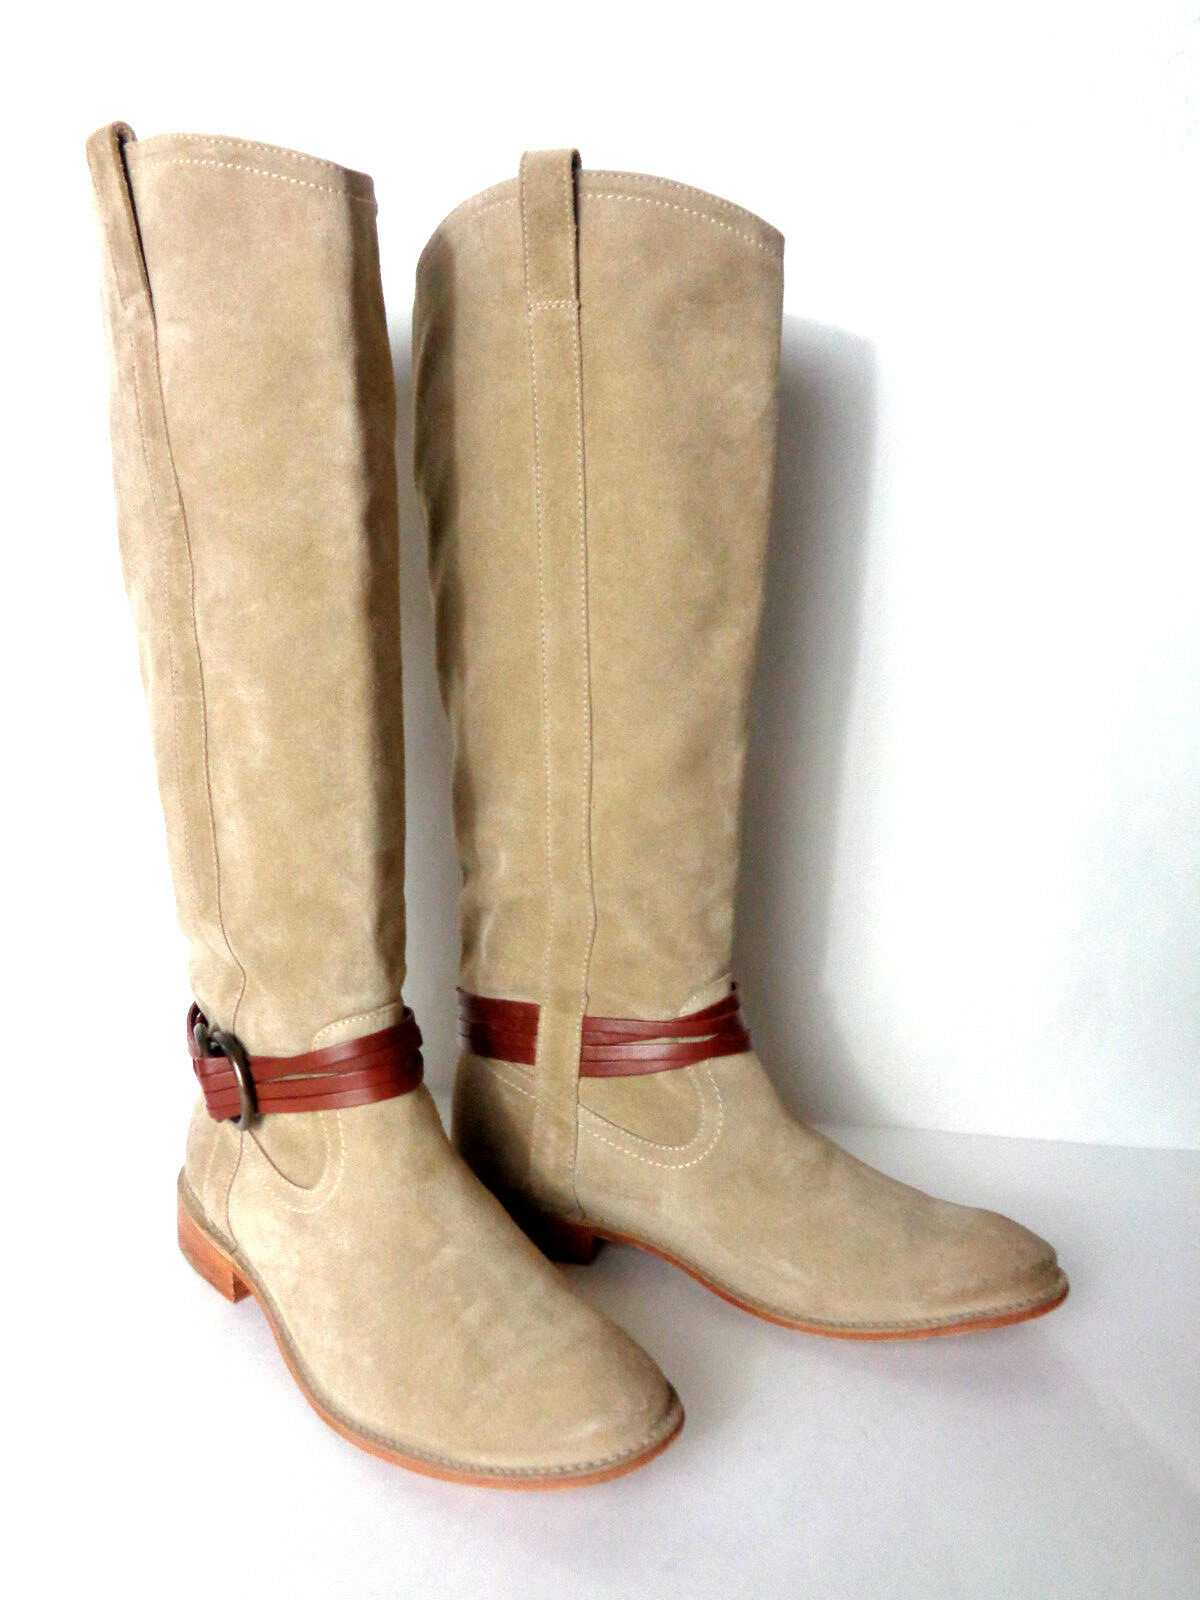 FRYE US 8.5M Shirley Plate Boots Tall 4003 Sand Brown Suede Leather Pull On